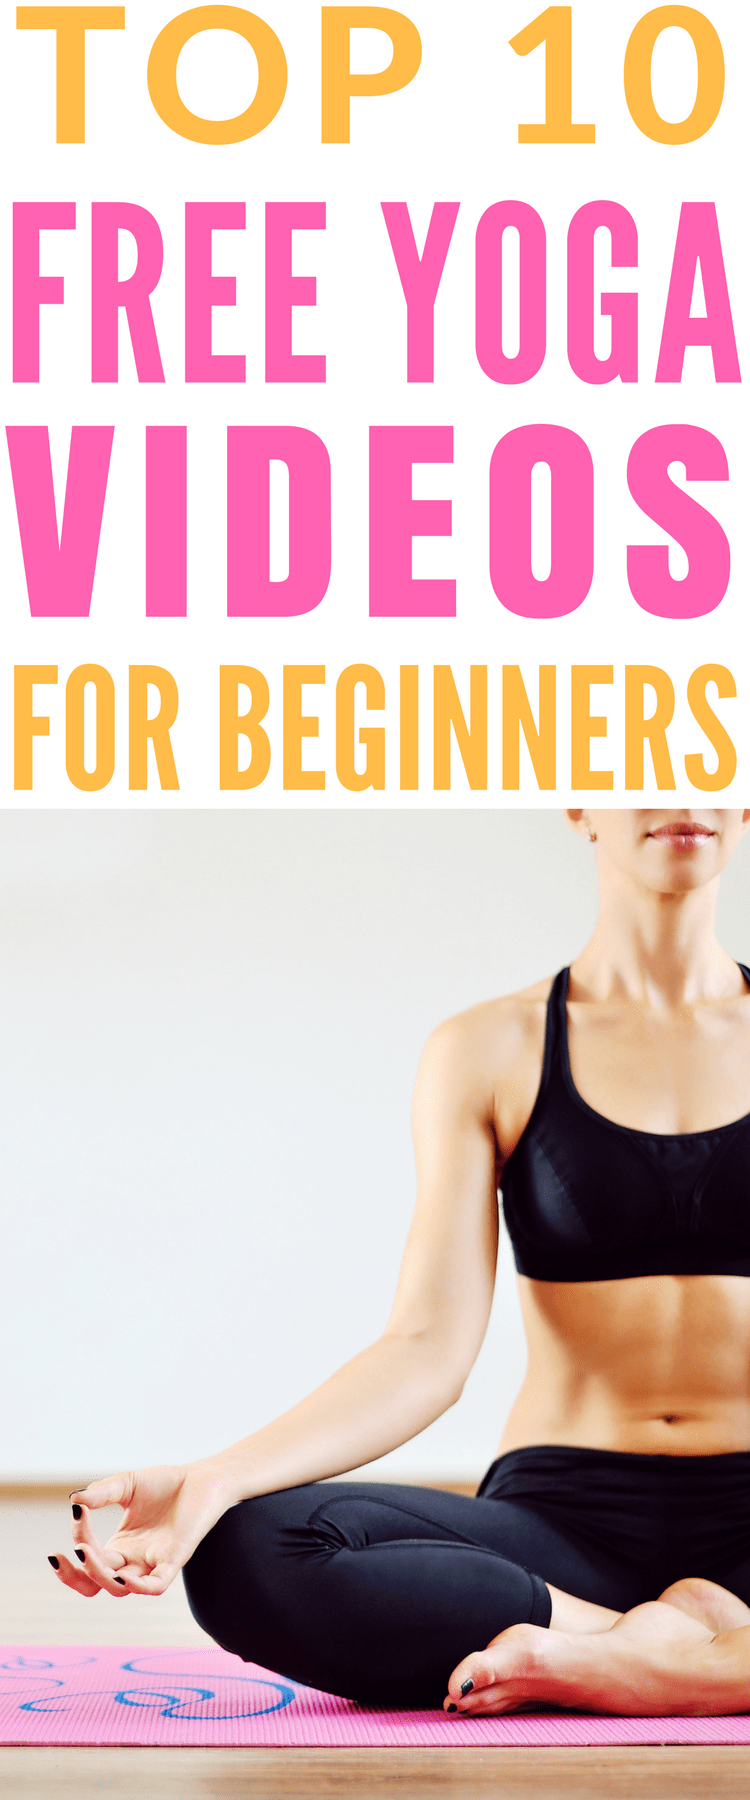 Free Beginners Yoga Workout Videos - The Top 10 easy to follow yoga workout videos covering everything from yoga for relaxation and weight loss, to prenatal and morning yoga sequences.